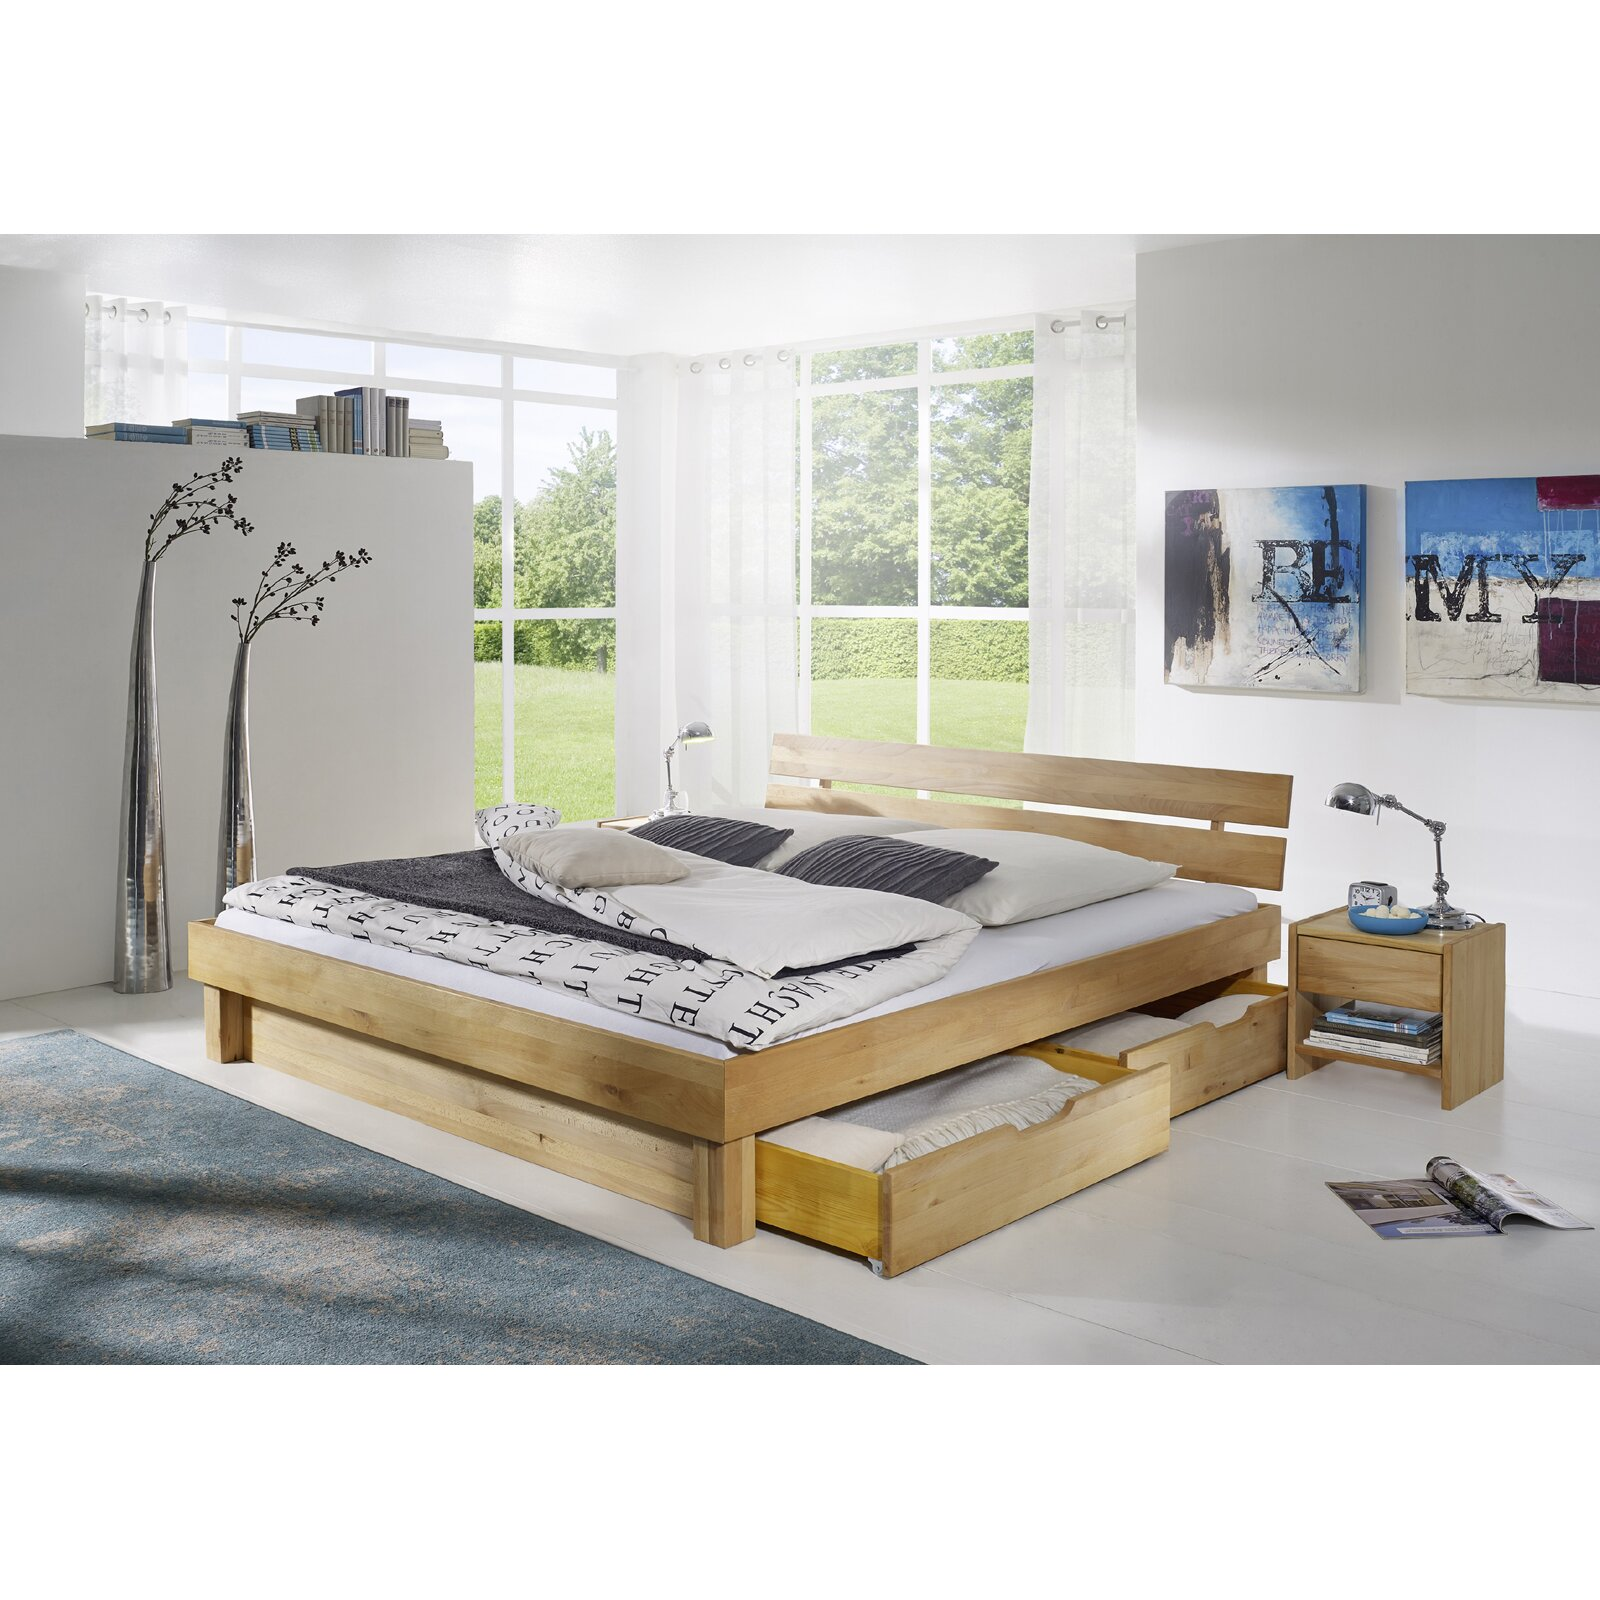 sam stil art m bel gmbh massivholzbett canyon mit stauraum. Black Bedroom Furniture Sets. Home Design Ideas